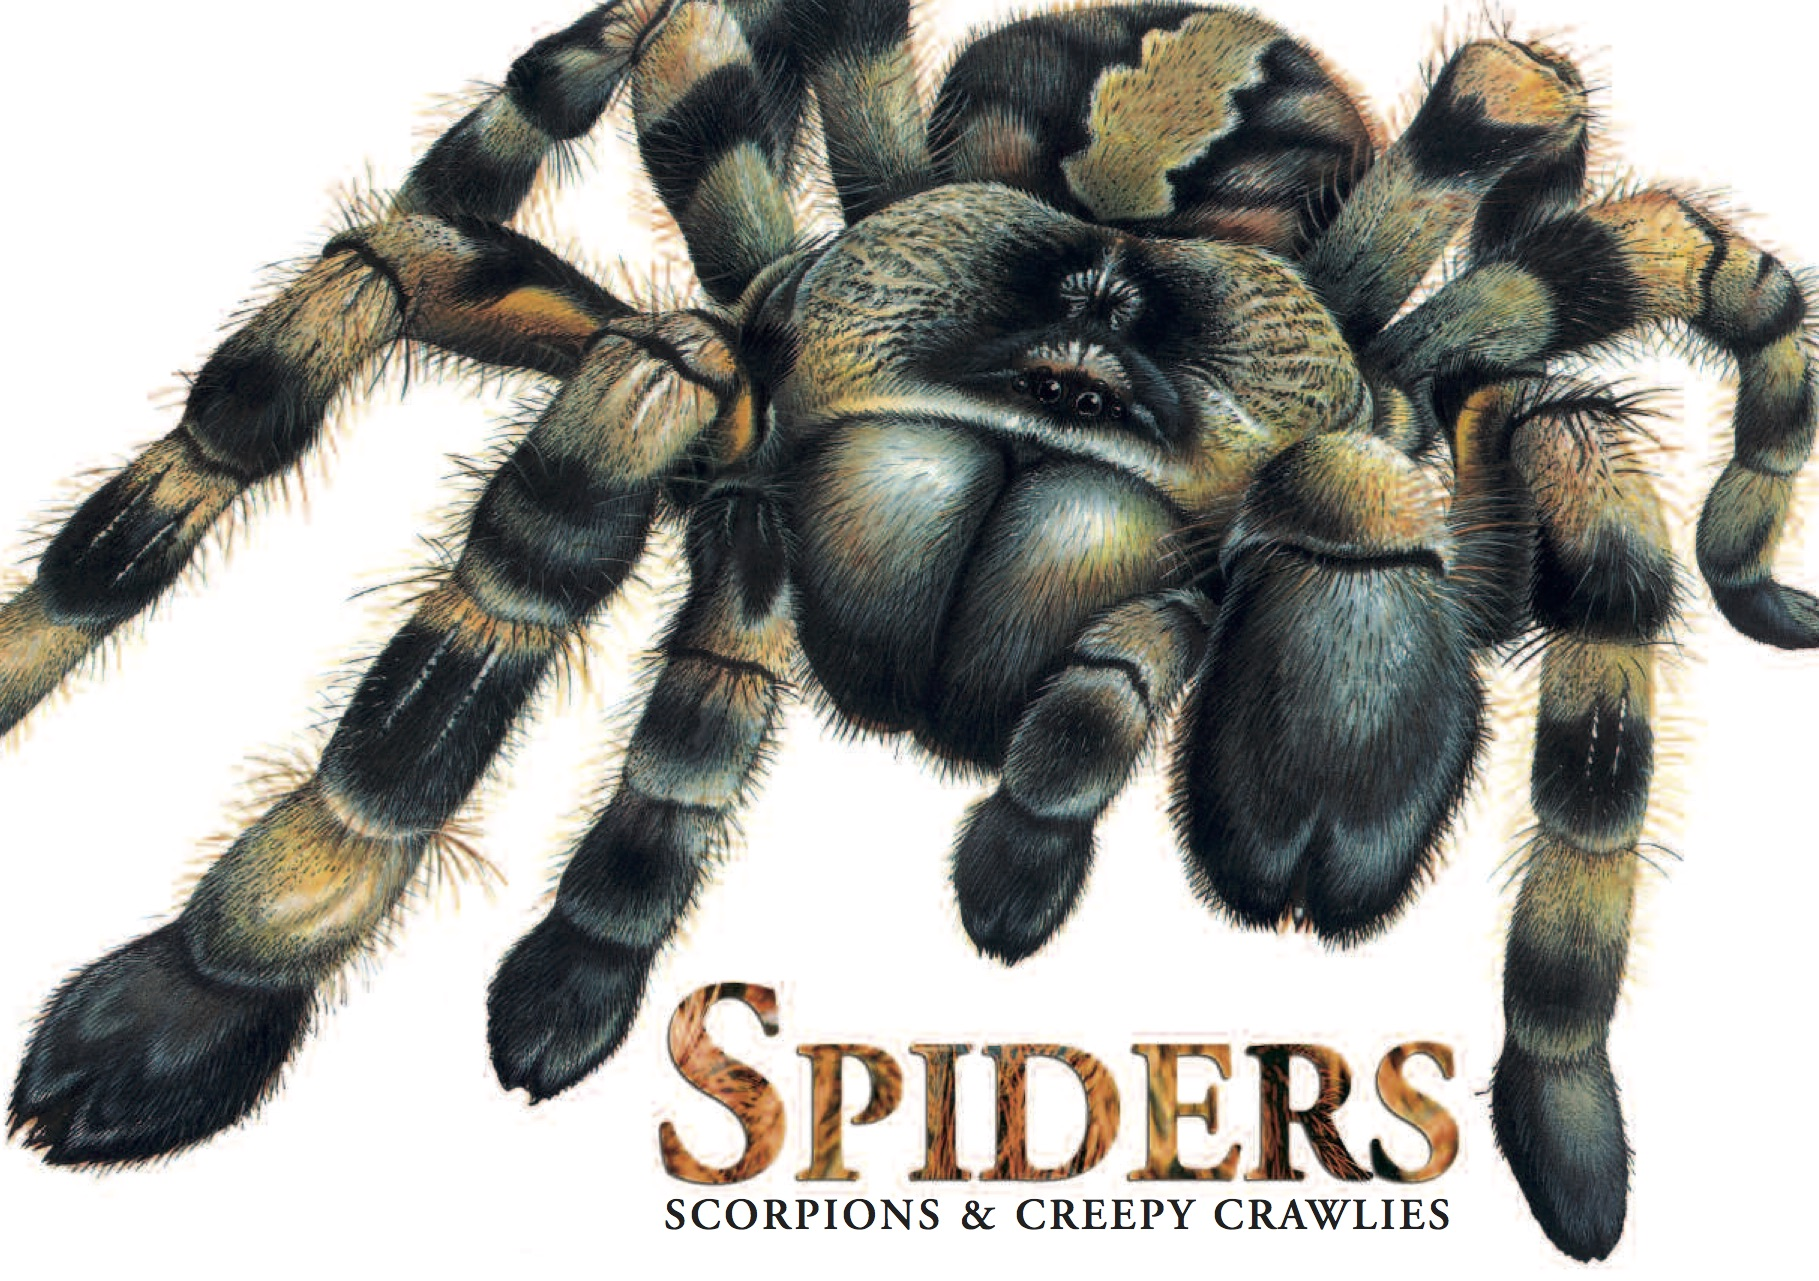 Spiders, Scorpions & Creepy Crawlies